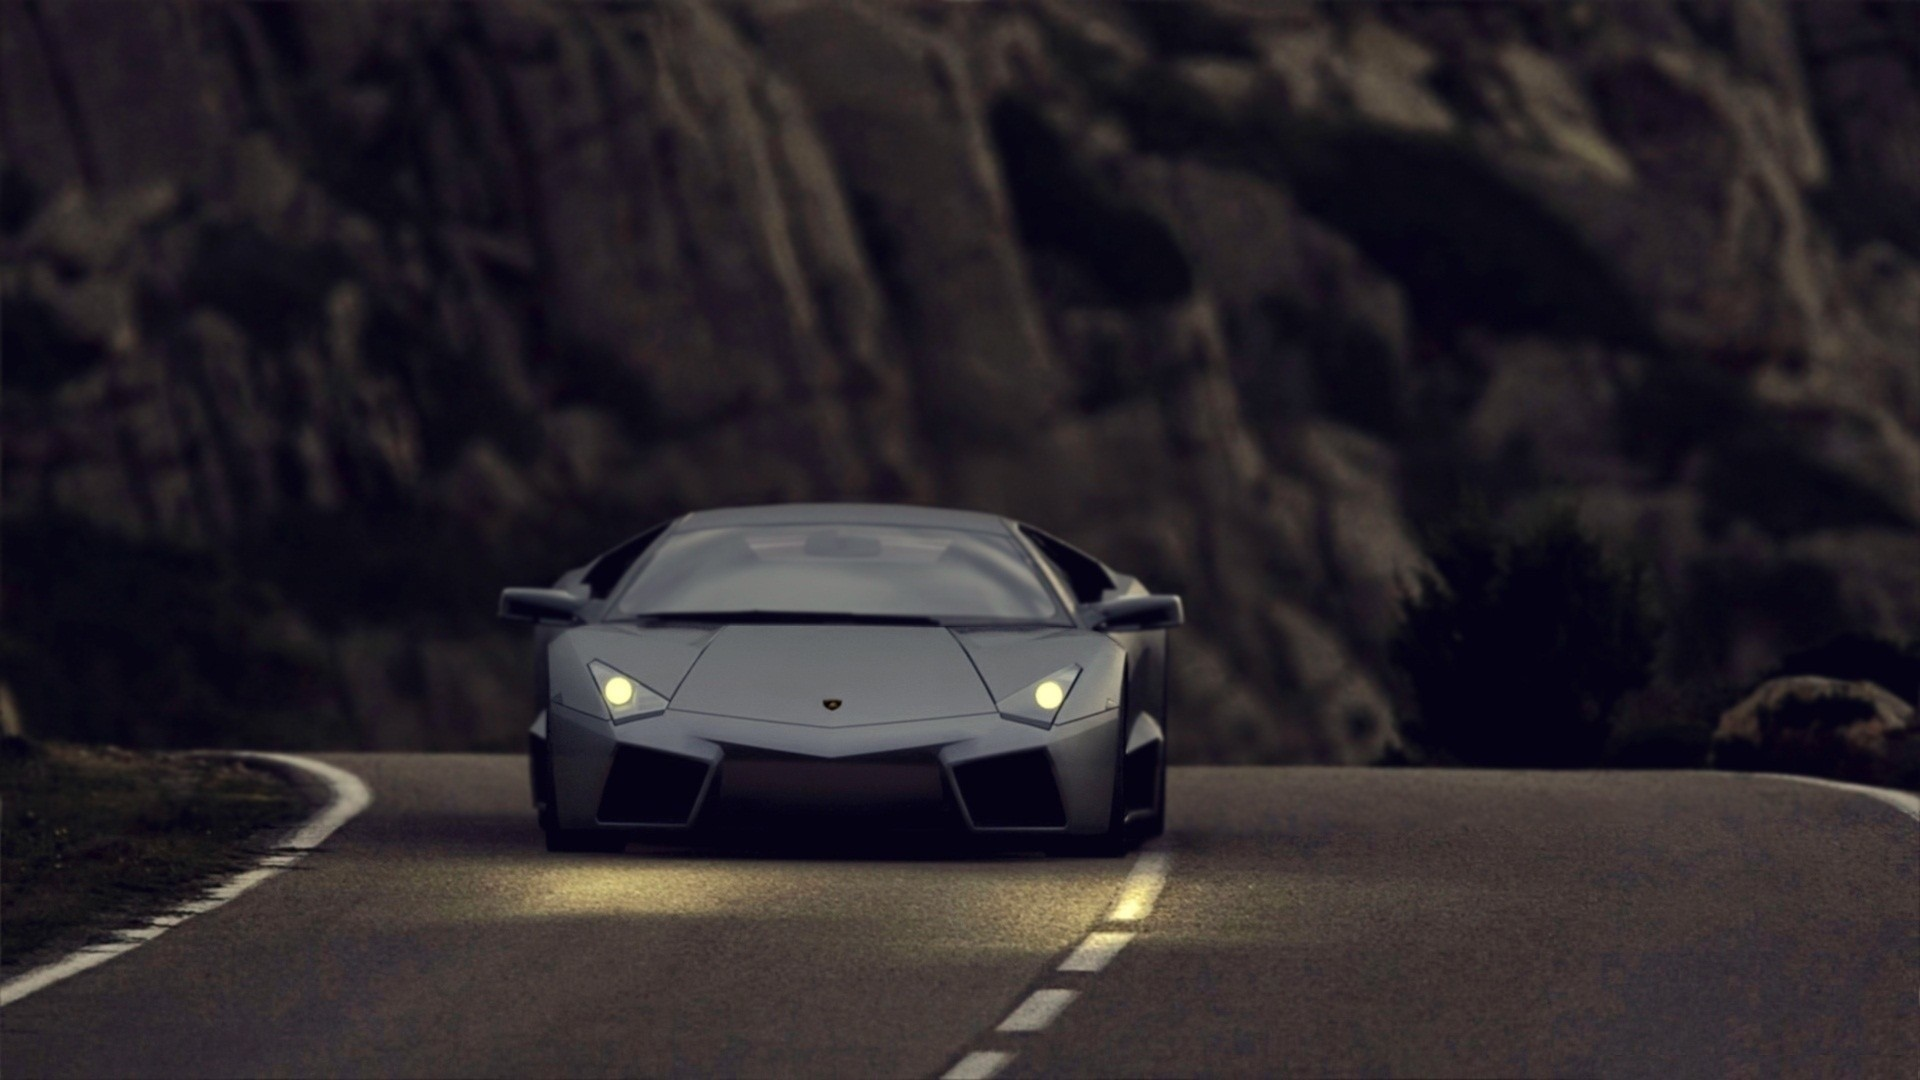 Res: 1920x1080, Lamborghini Dark wallpapers HD. Click on the image to view full size and download.